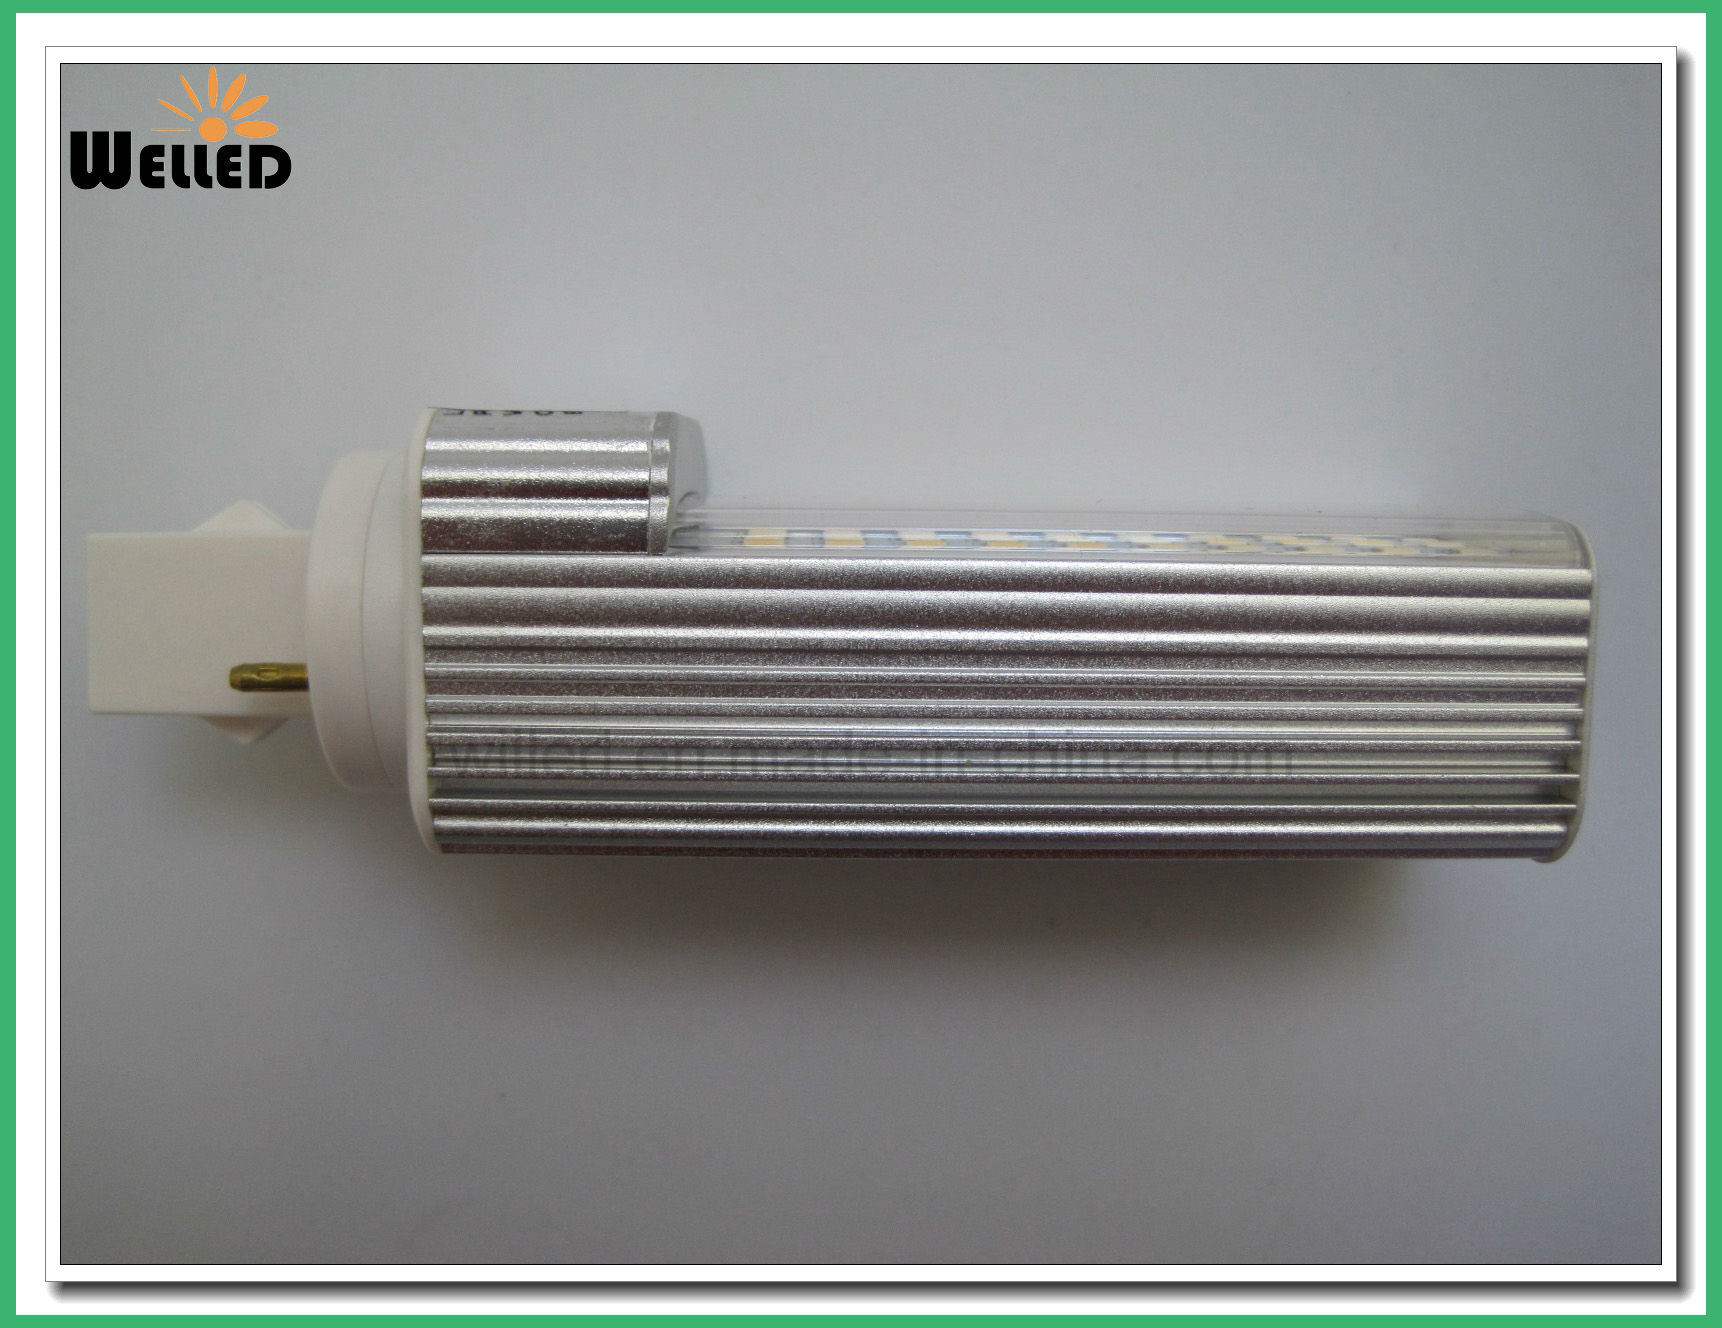 6W LED PLC Bulb Light G24 with Rotatable Base